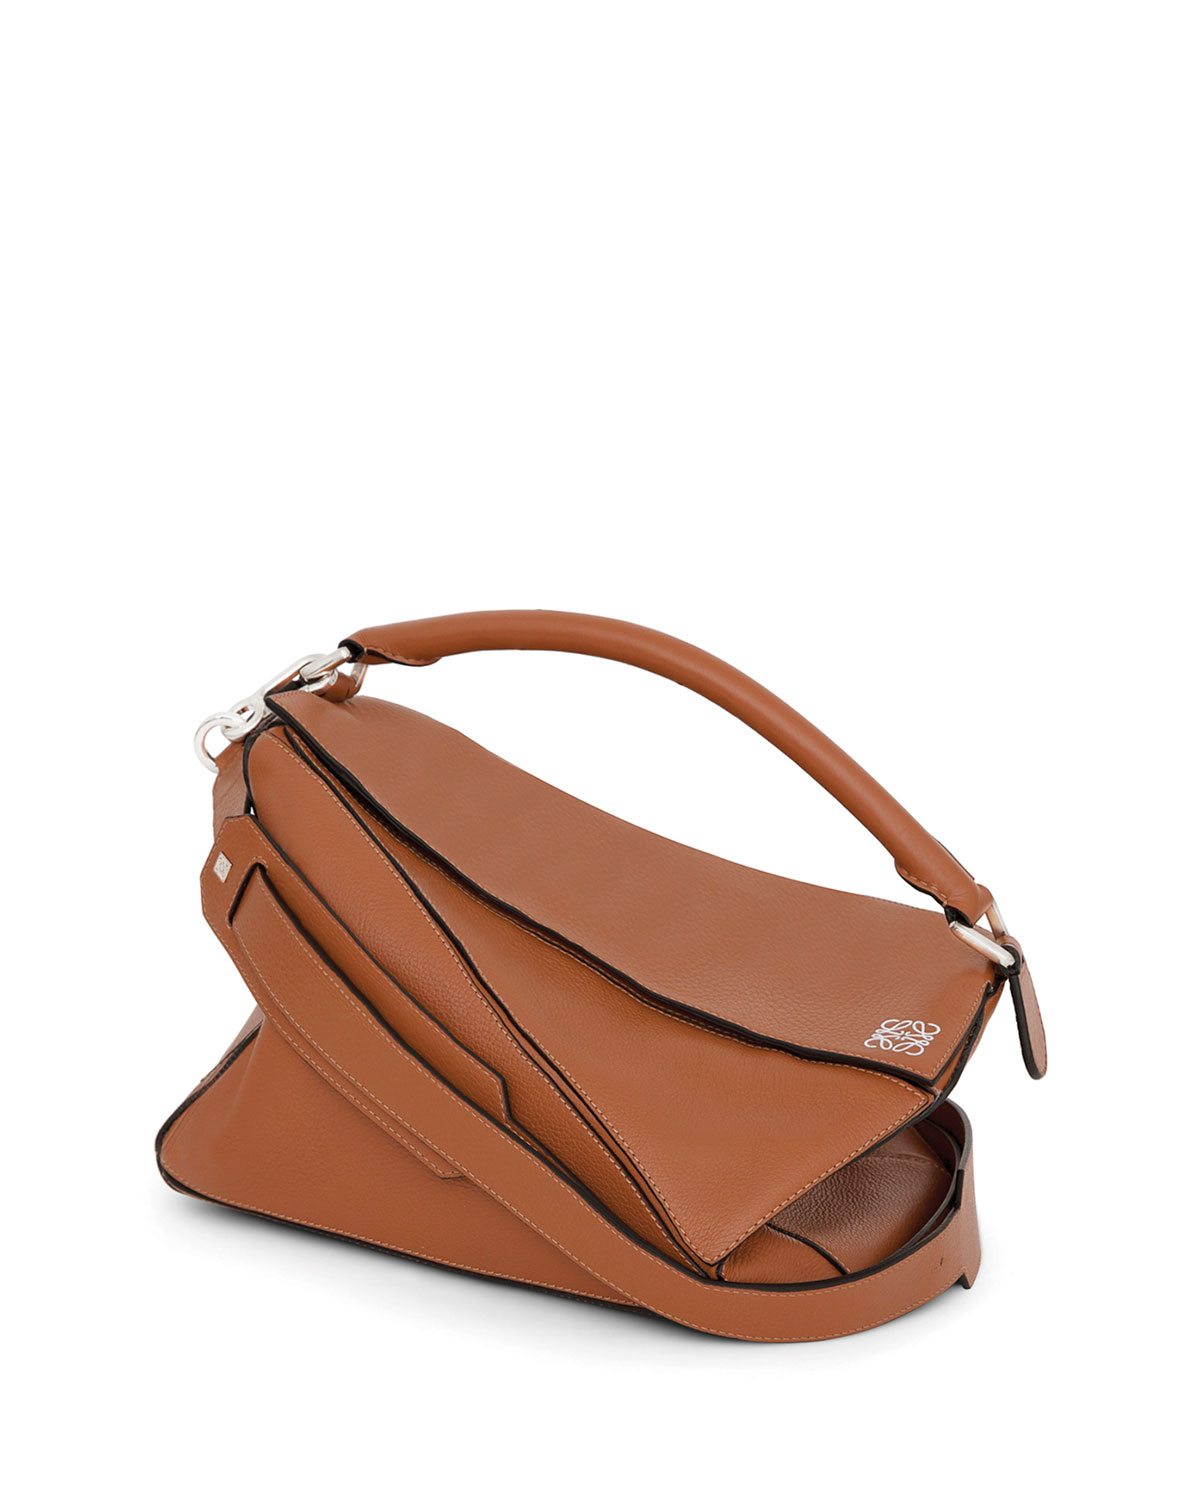 Best Handbags and Purses : Why Our Editor Is Loving Loewe ...